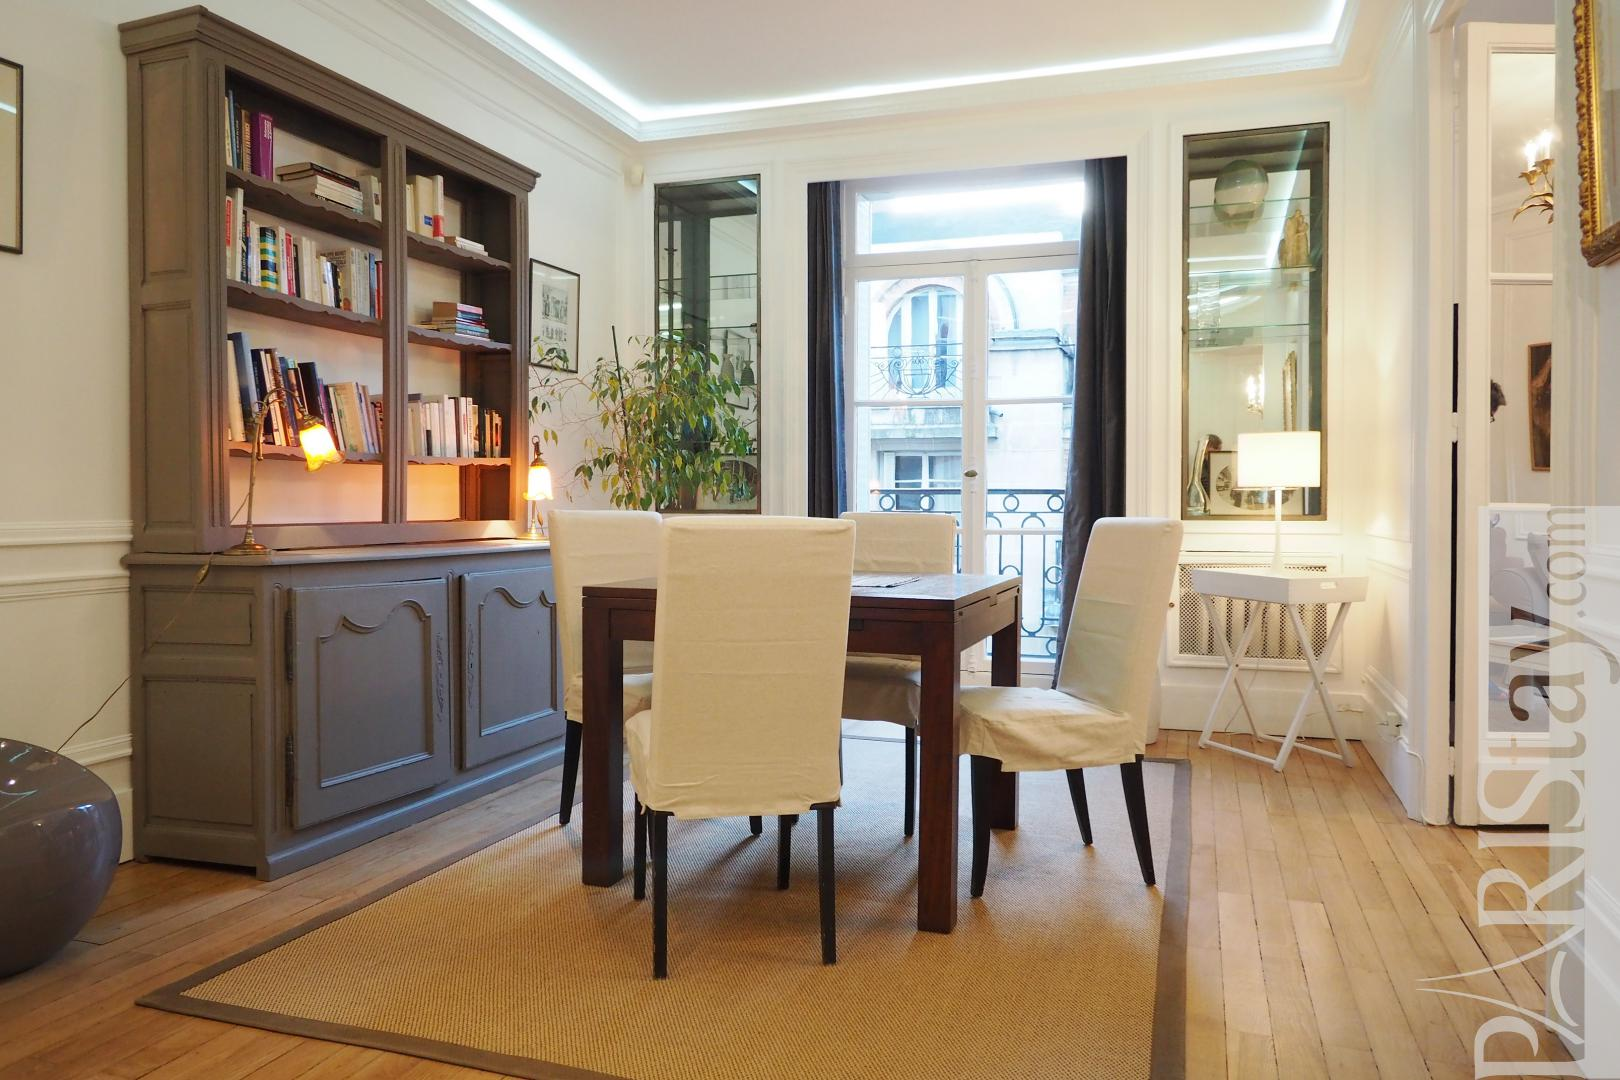 Living room. Duplex 2 bedroom apartment champs elysees Champs Elysees 75008 Paris